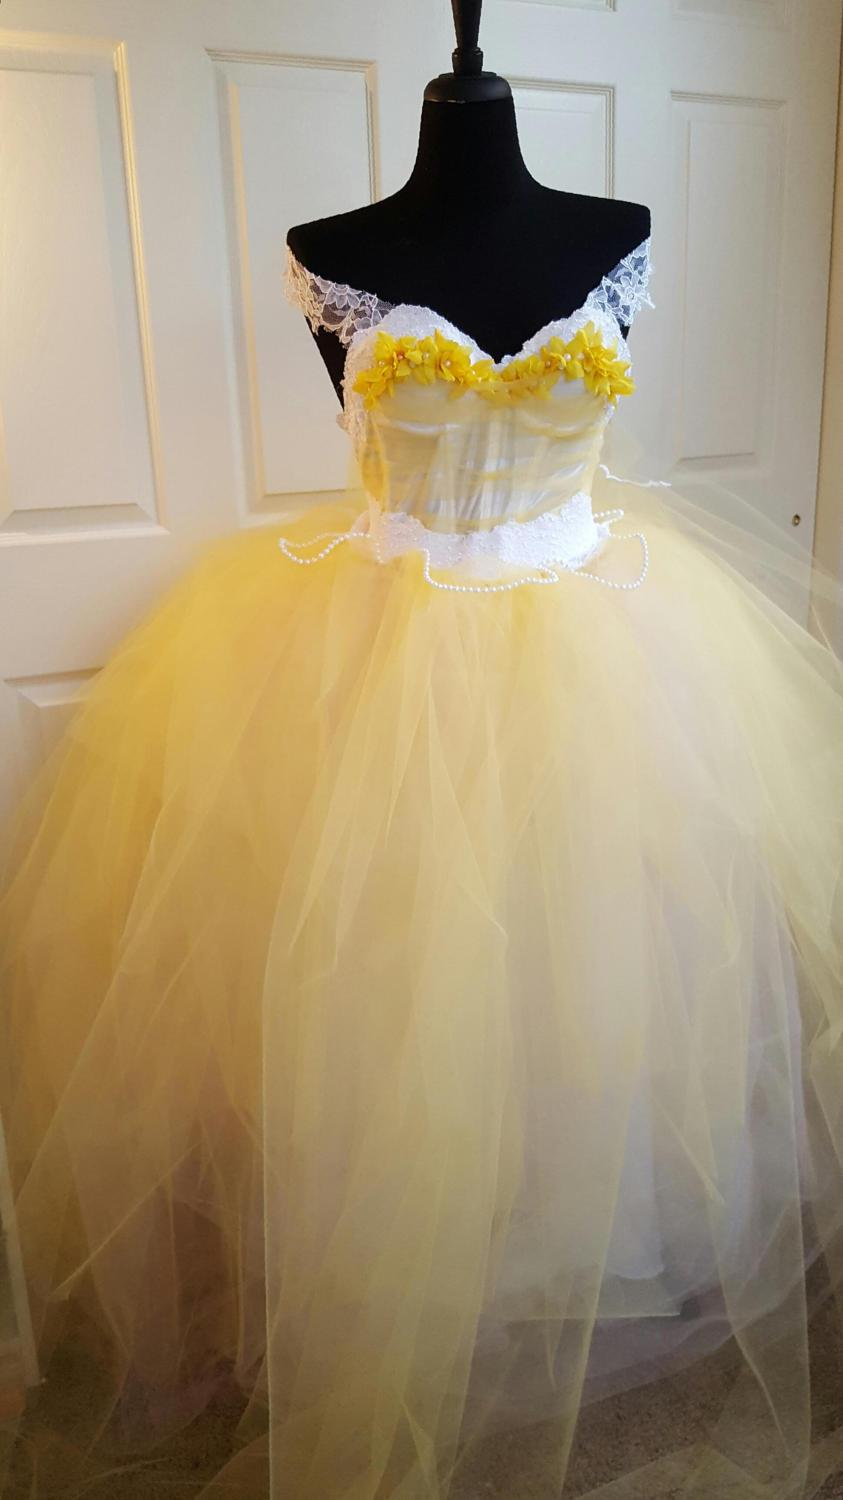 Sample Gown Belle Beauty The Beast Style Yellow White Corset W